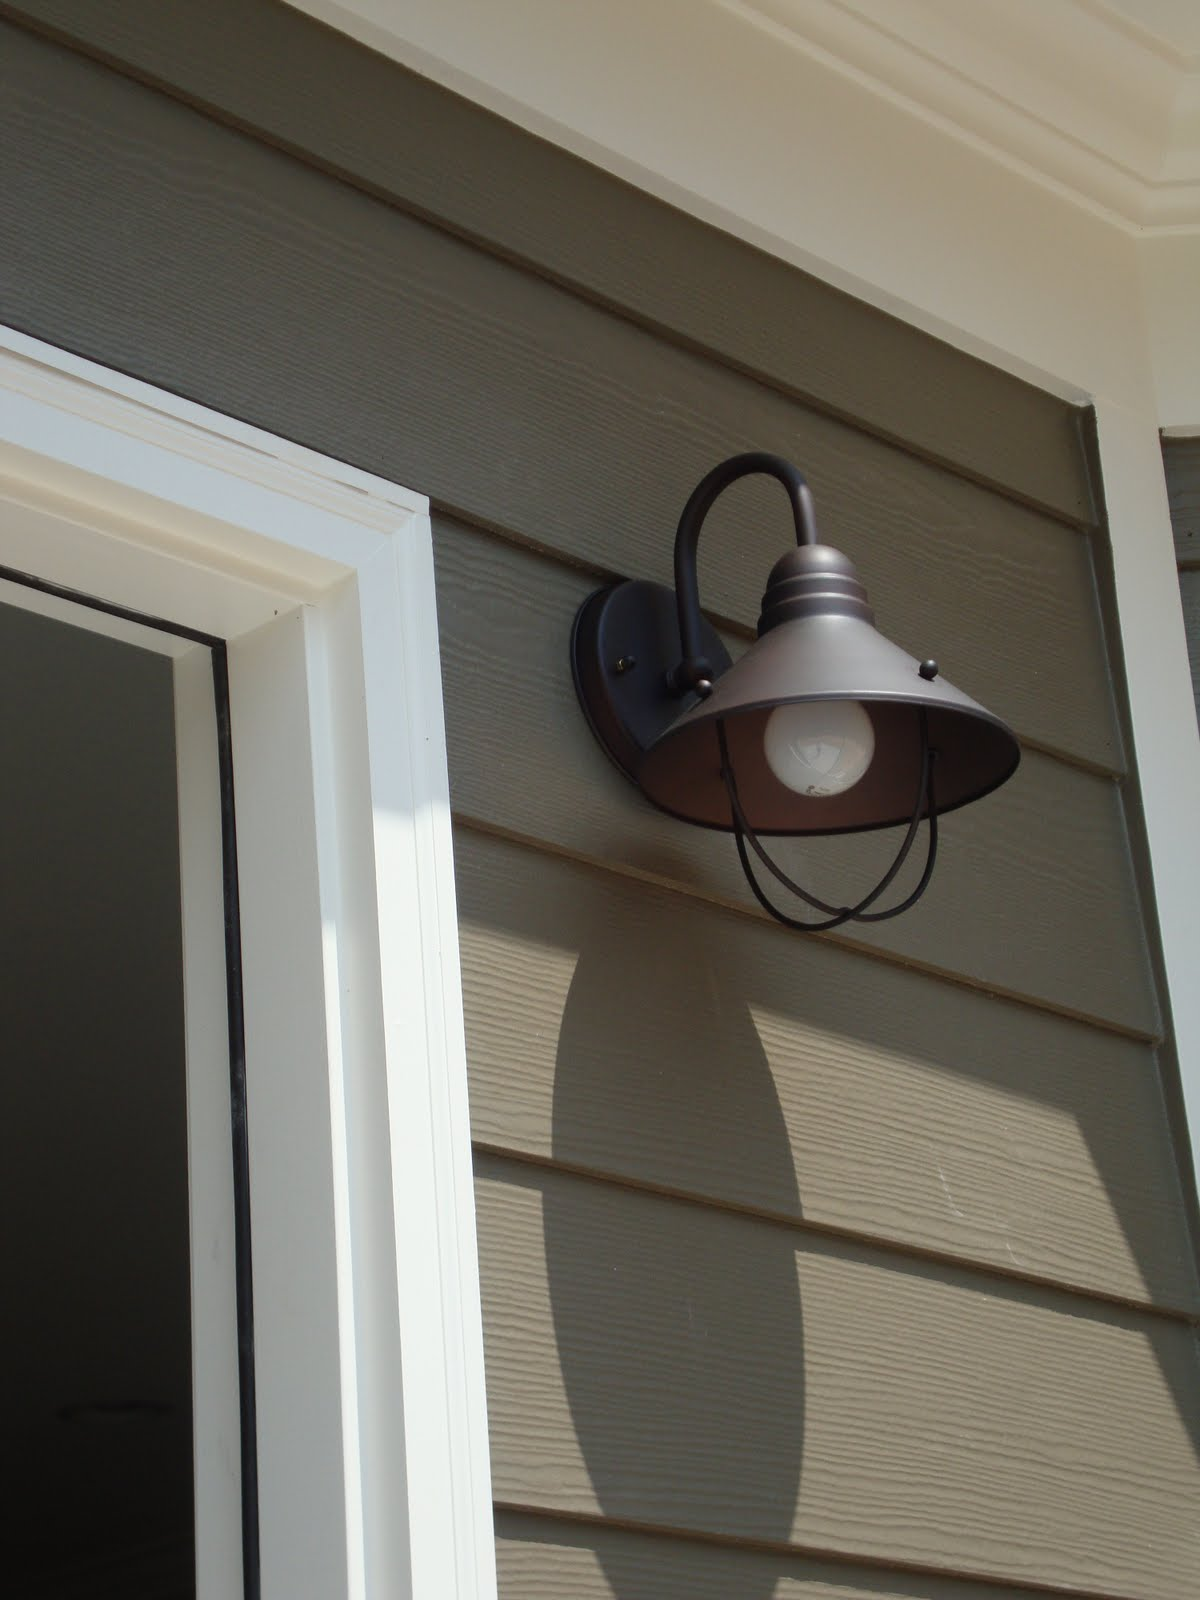 the back porch light is such a cute little transitional sconce also